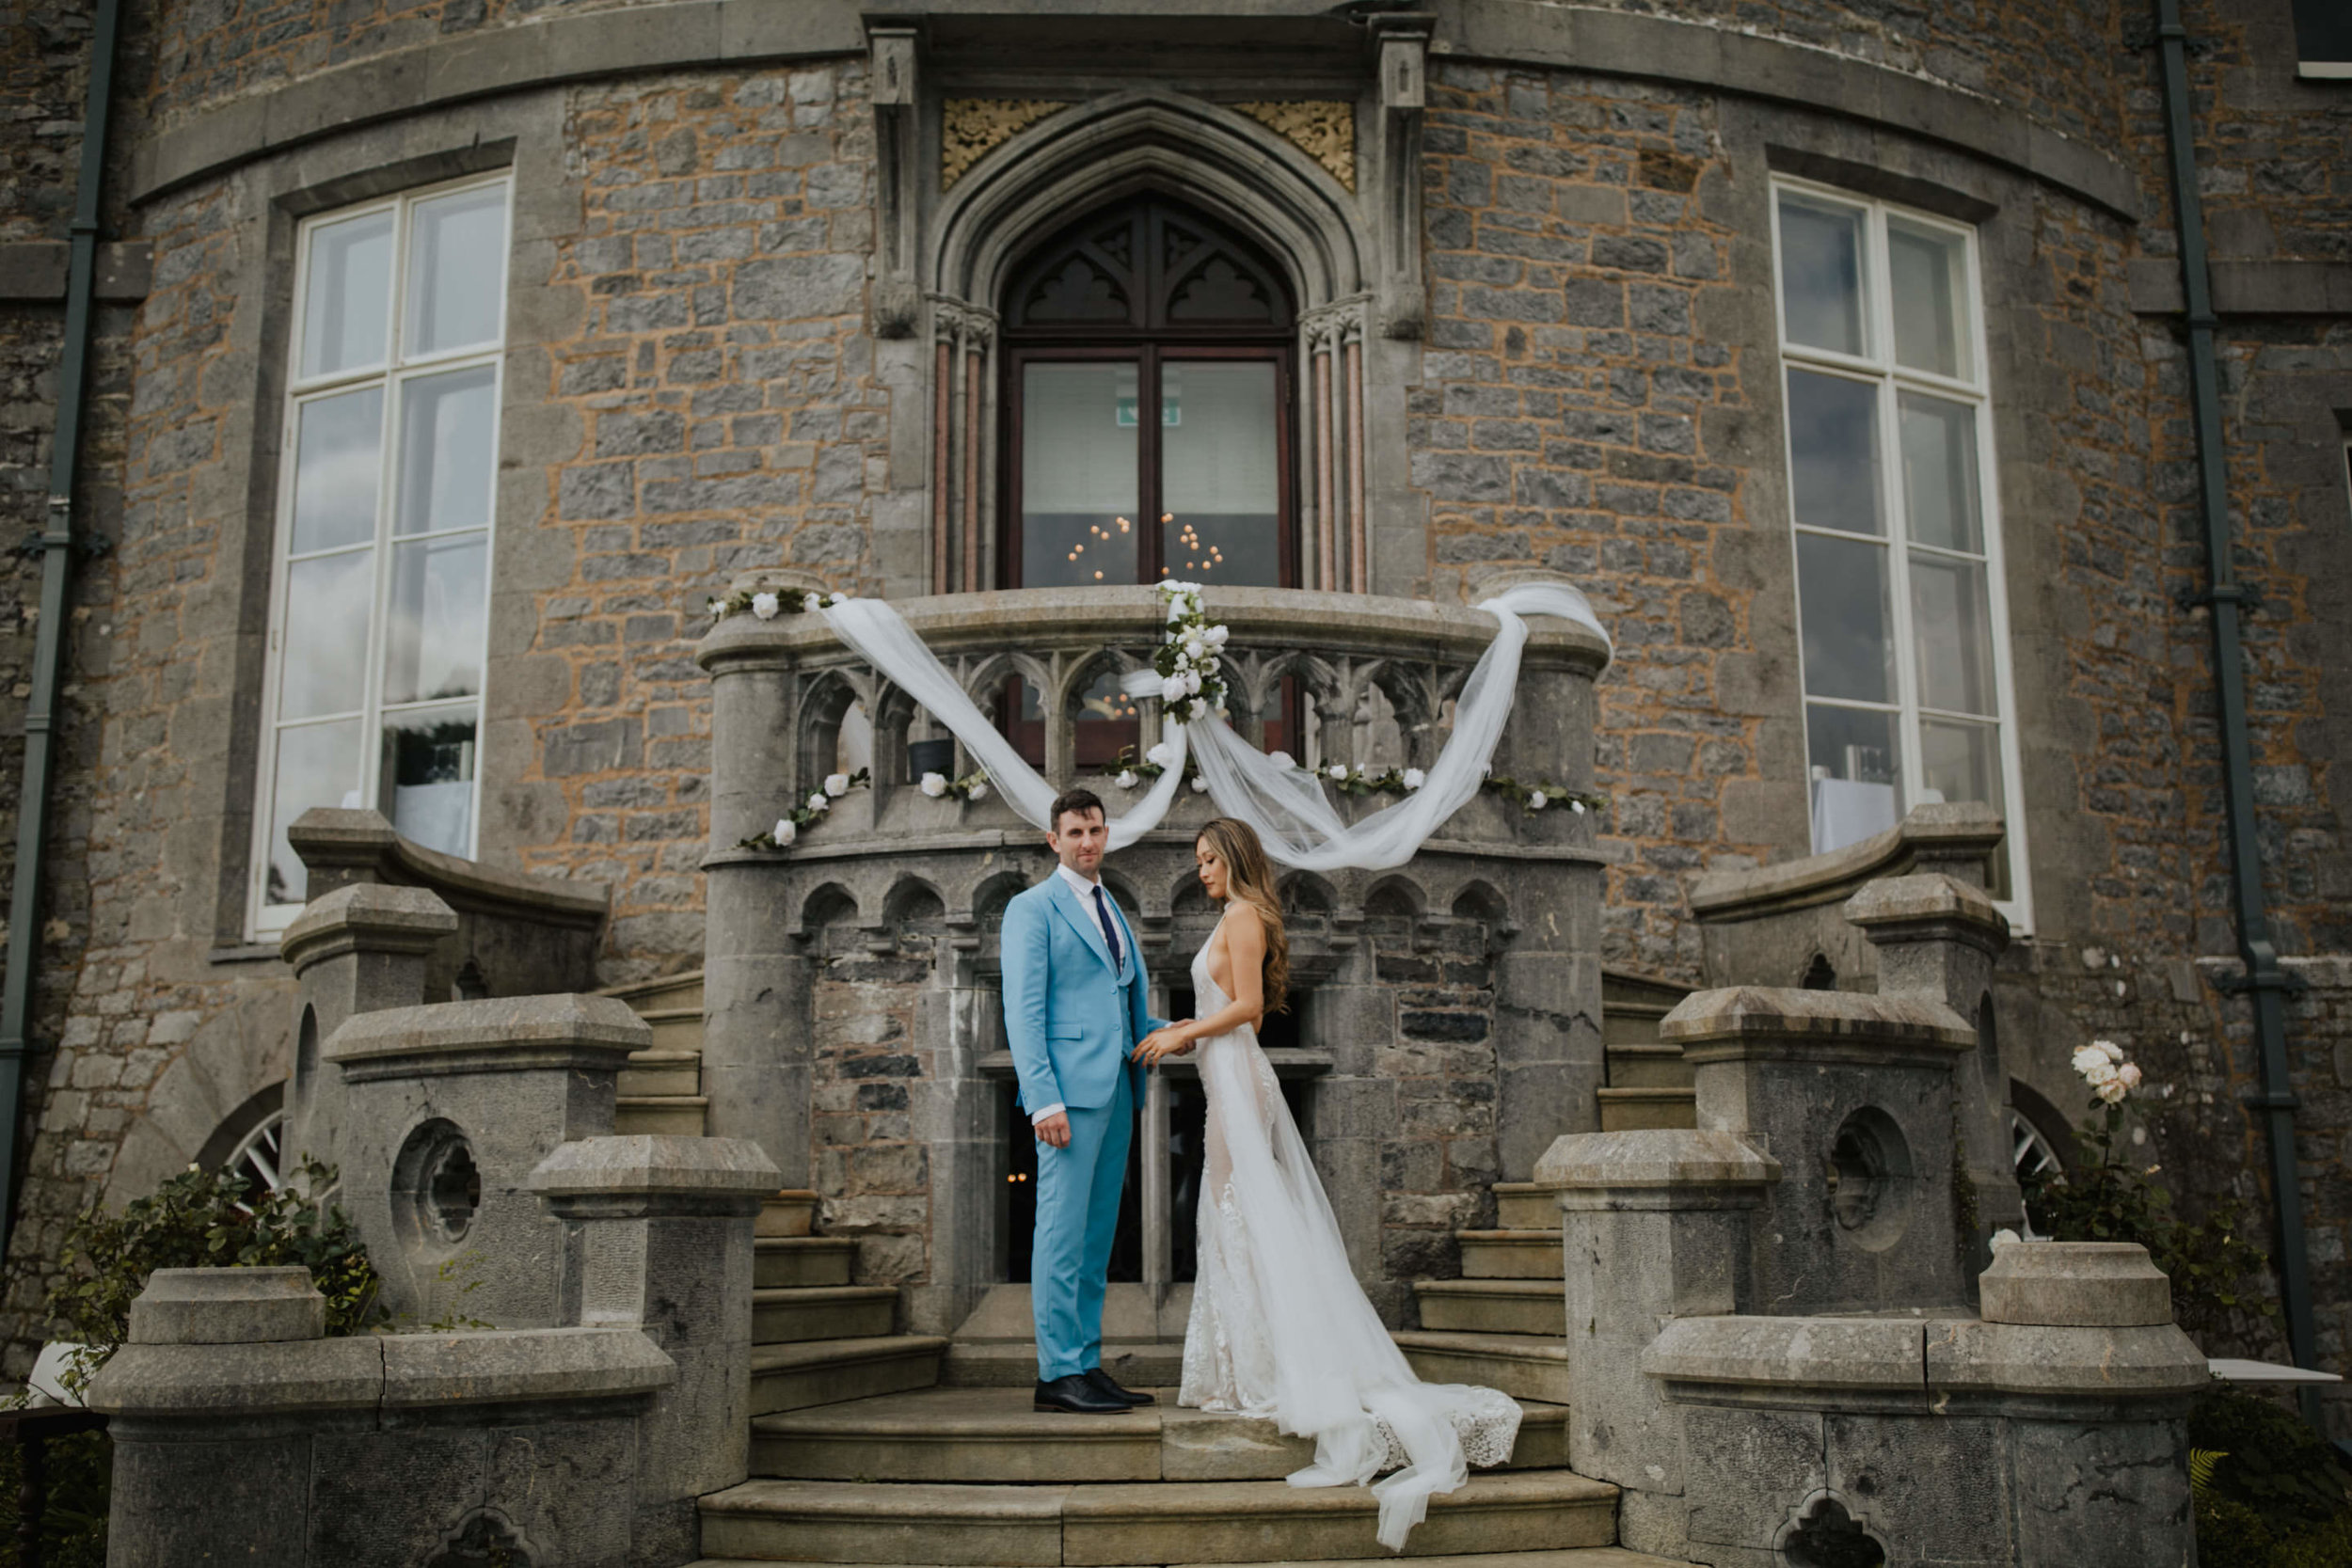 d&c_markree_castle_sligo_wedding_photographer_livia_figueiredo_12.jpg